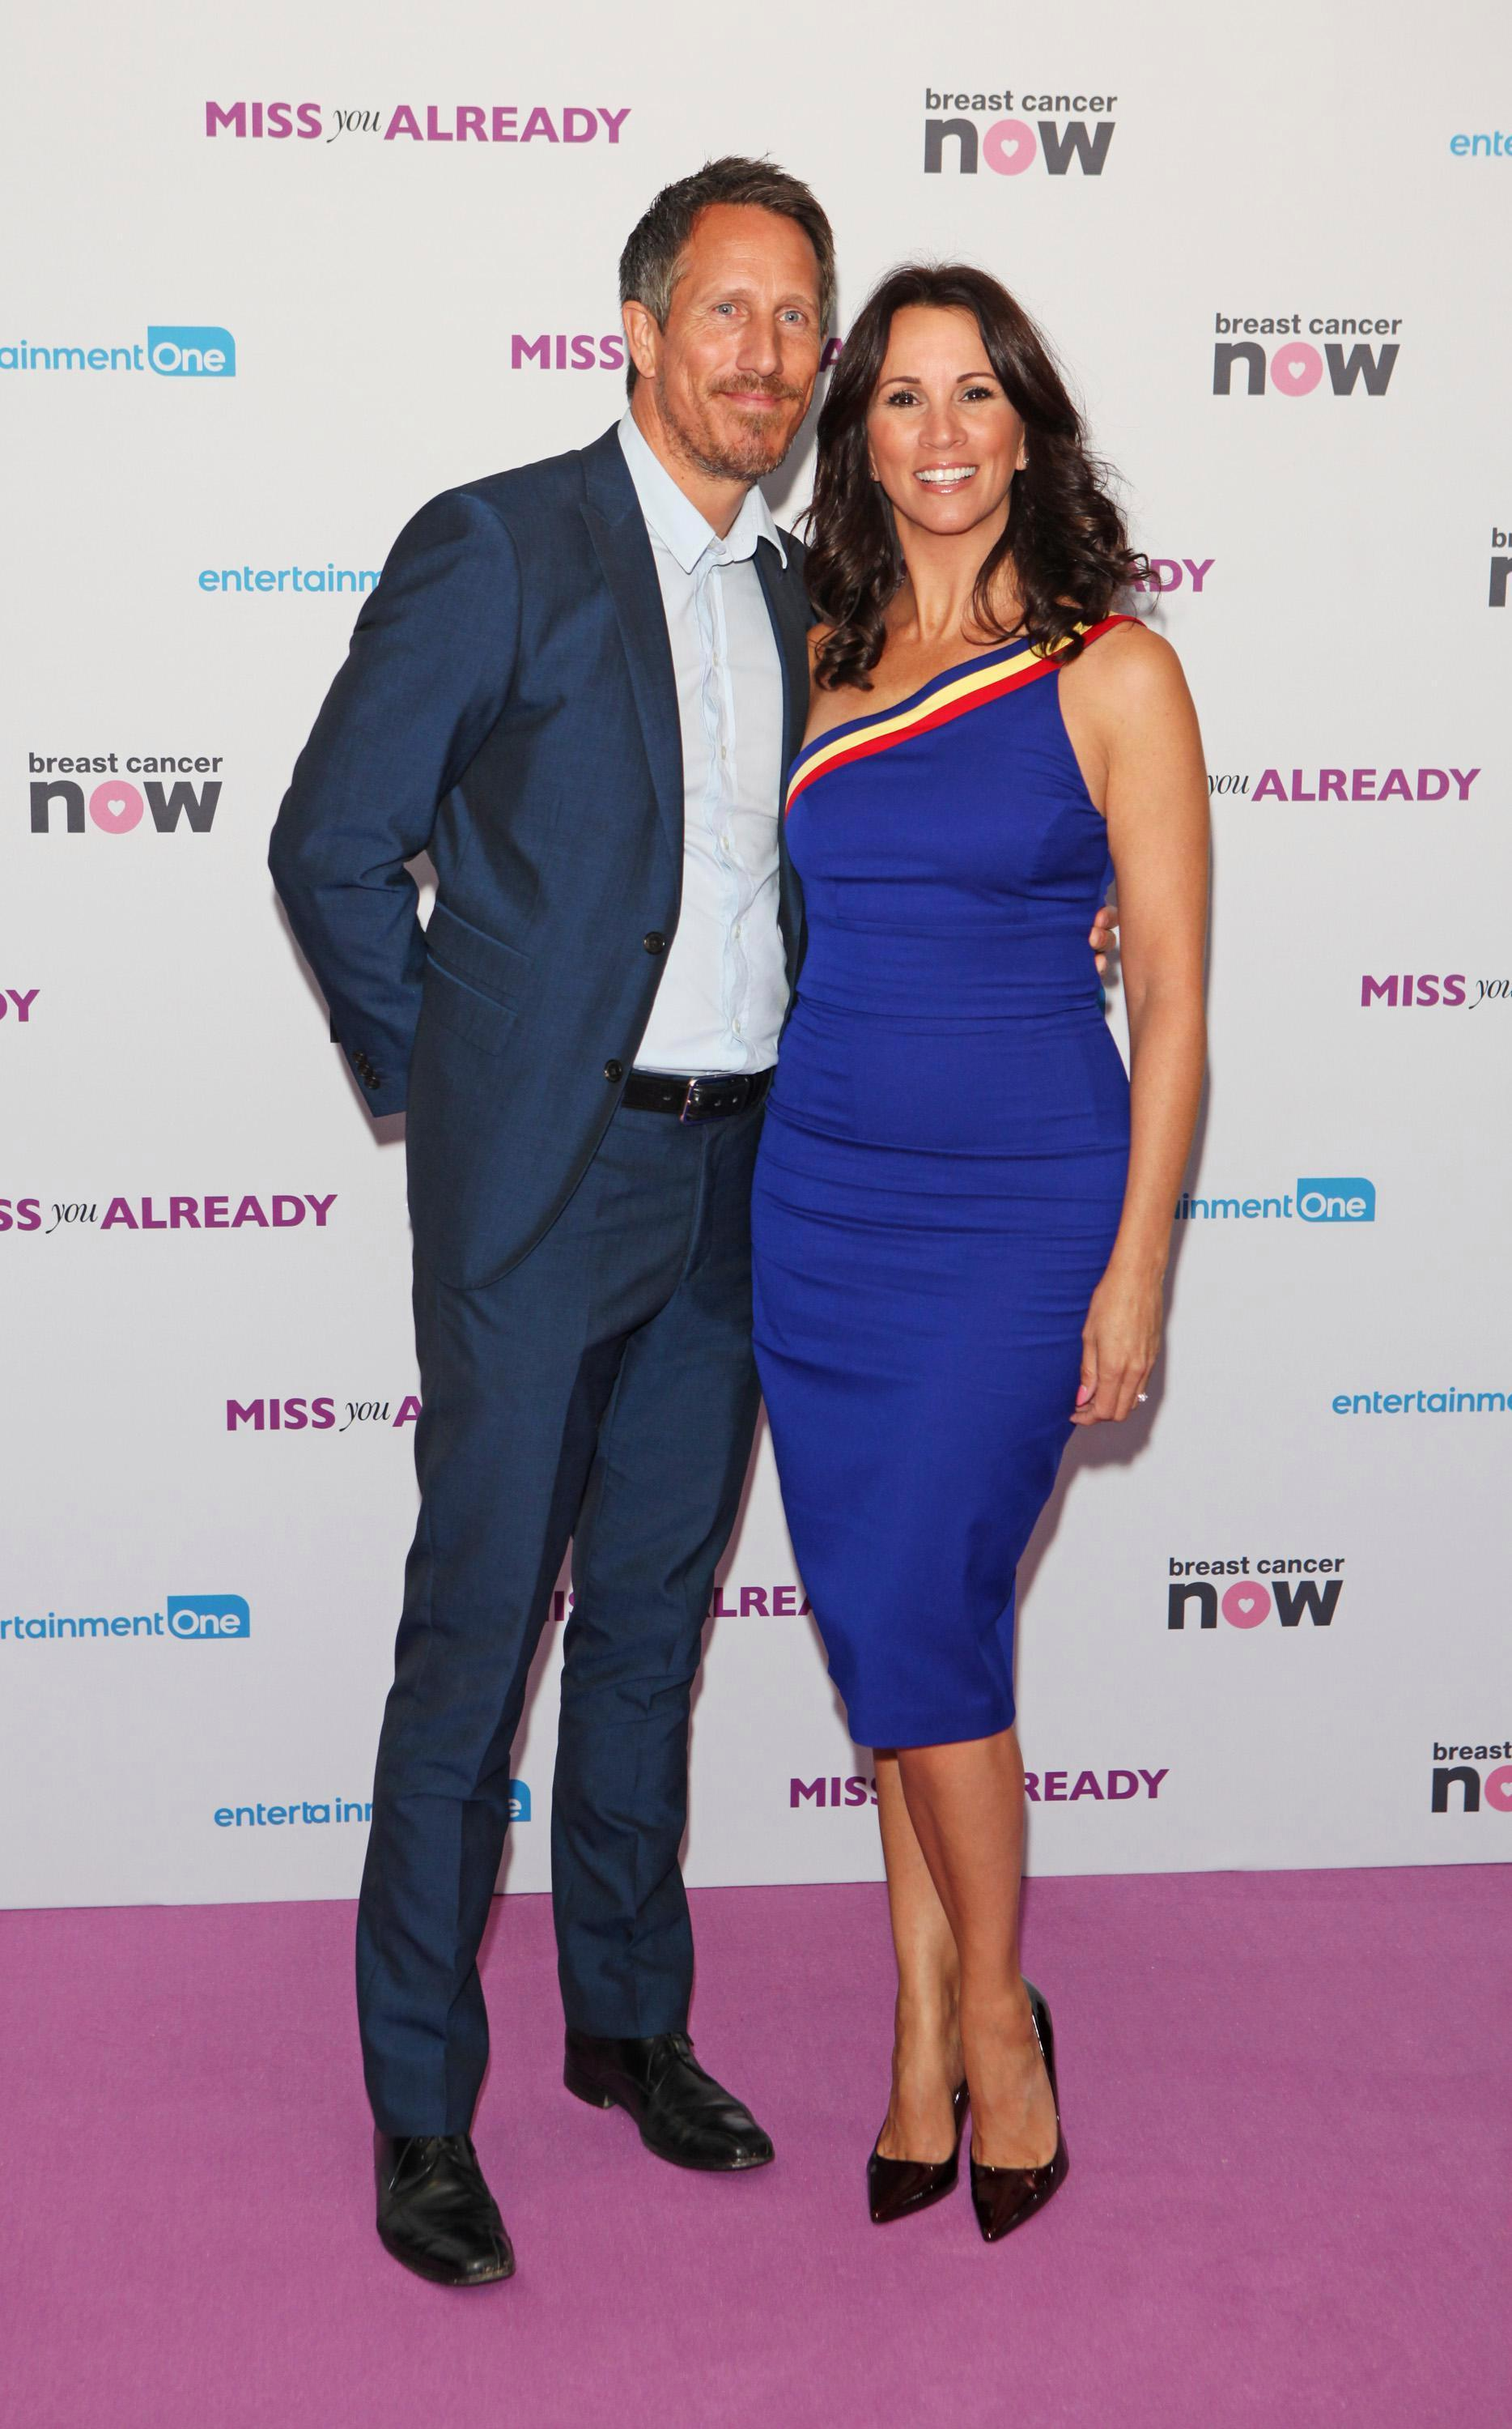 Who is Nick Feeney? Andrea McLean's husband and businessman who married the Loose Women star in 2017